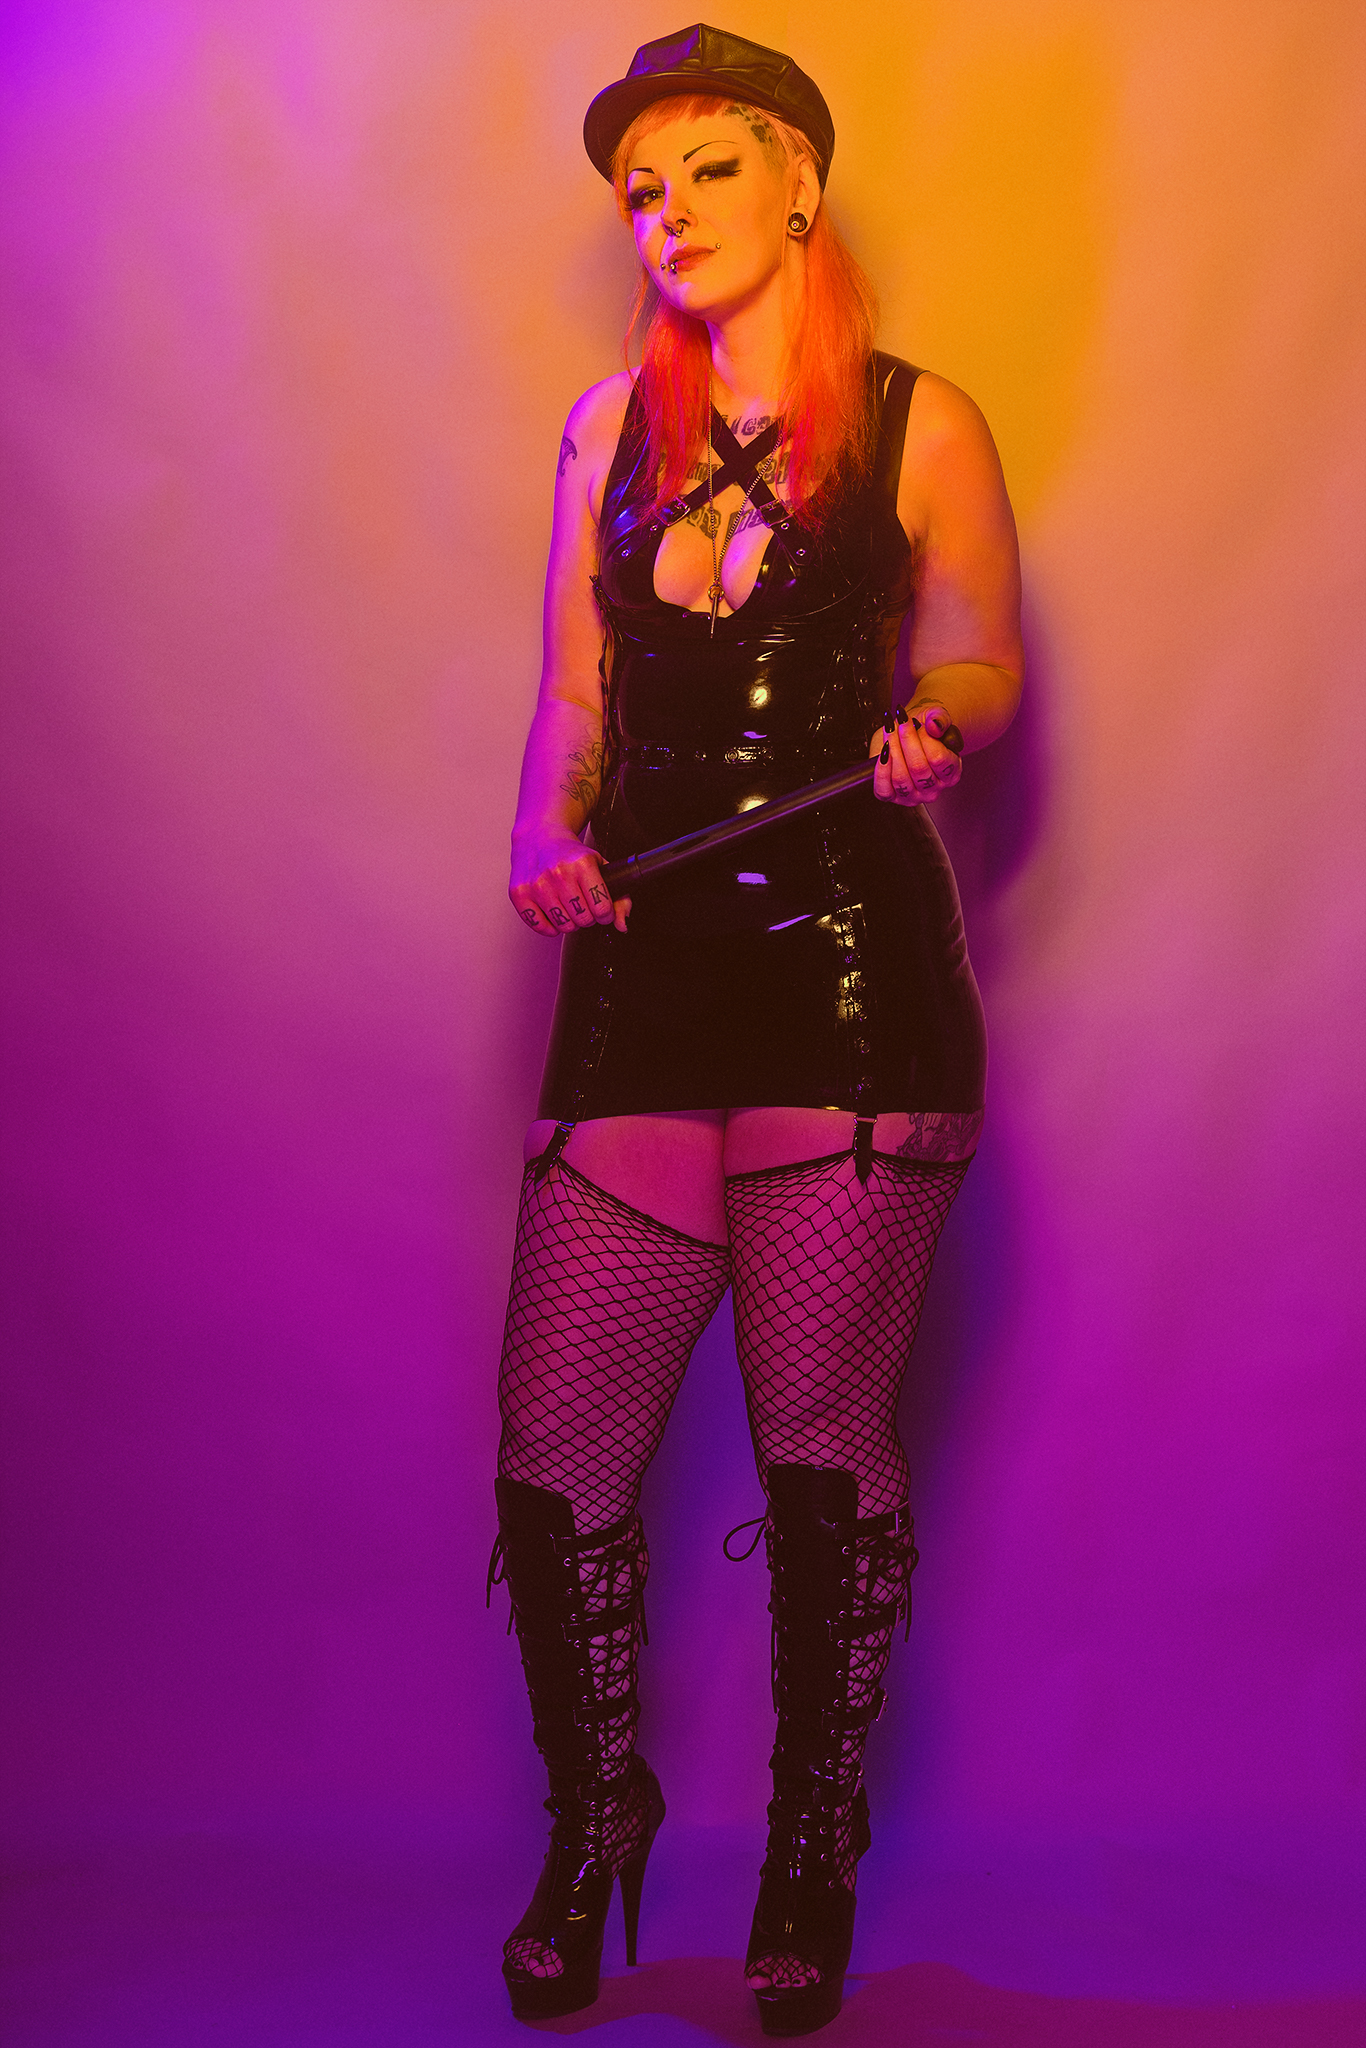 Austin Texas Professional Dominatrix